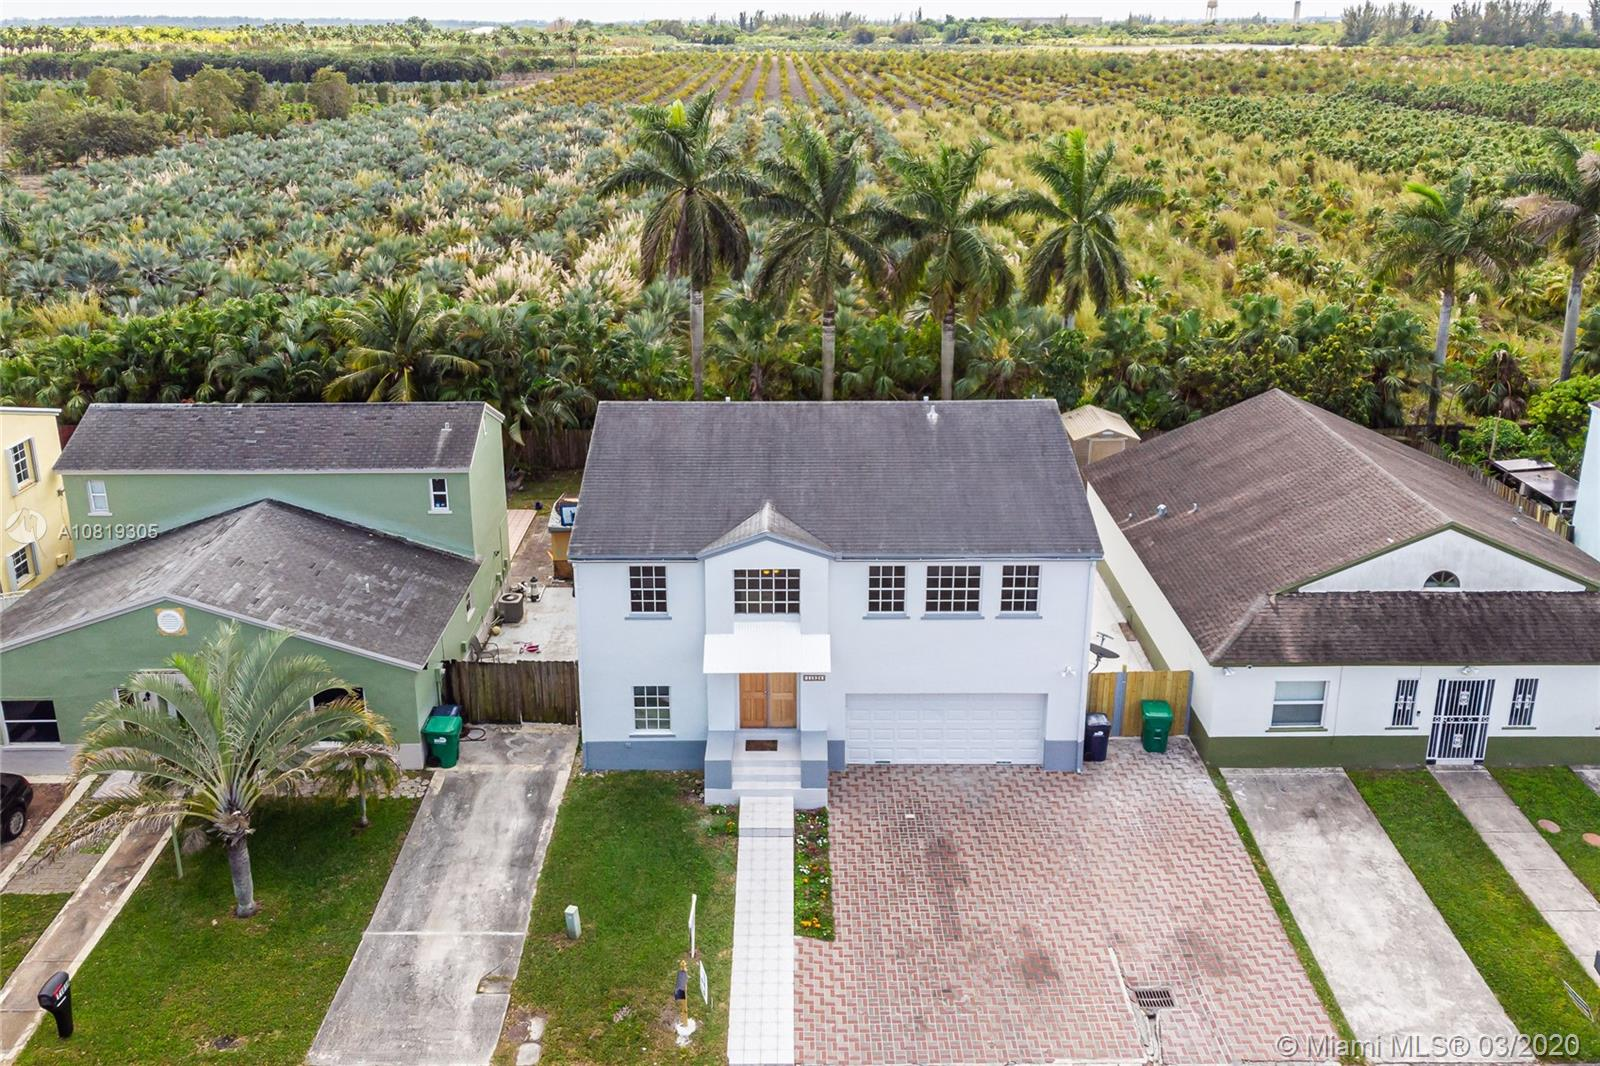 11824 SW 273rd Ln, Homestead, FL 33032 - Homestead, FL real estate listing